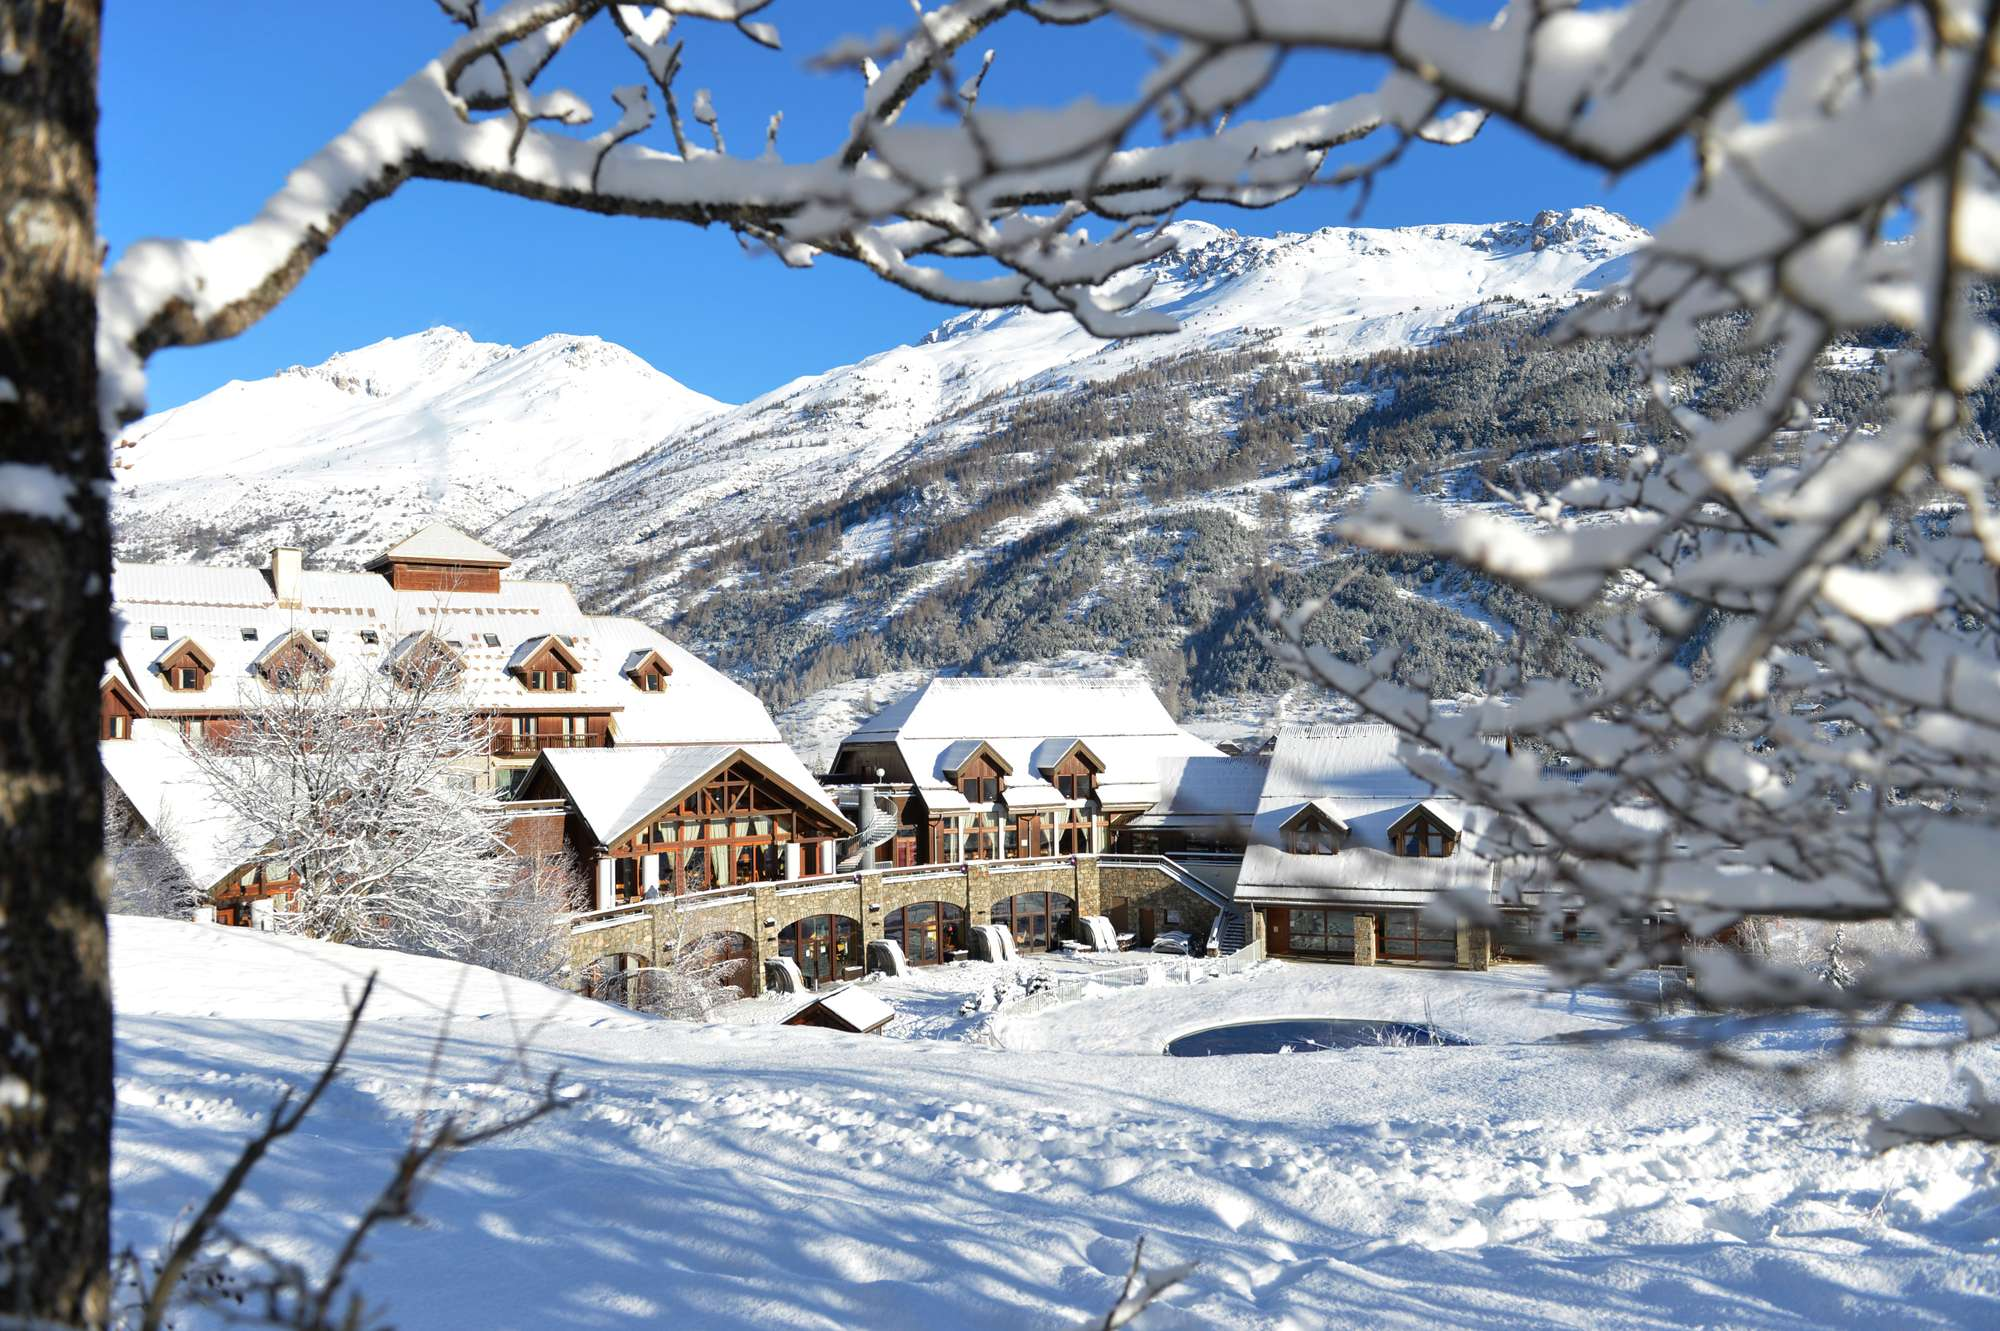 Https  ns.clubmed.com icp 1 media 01.villages 1.3montagne serre chevalier 86 photos schca114013